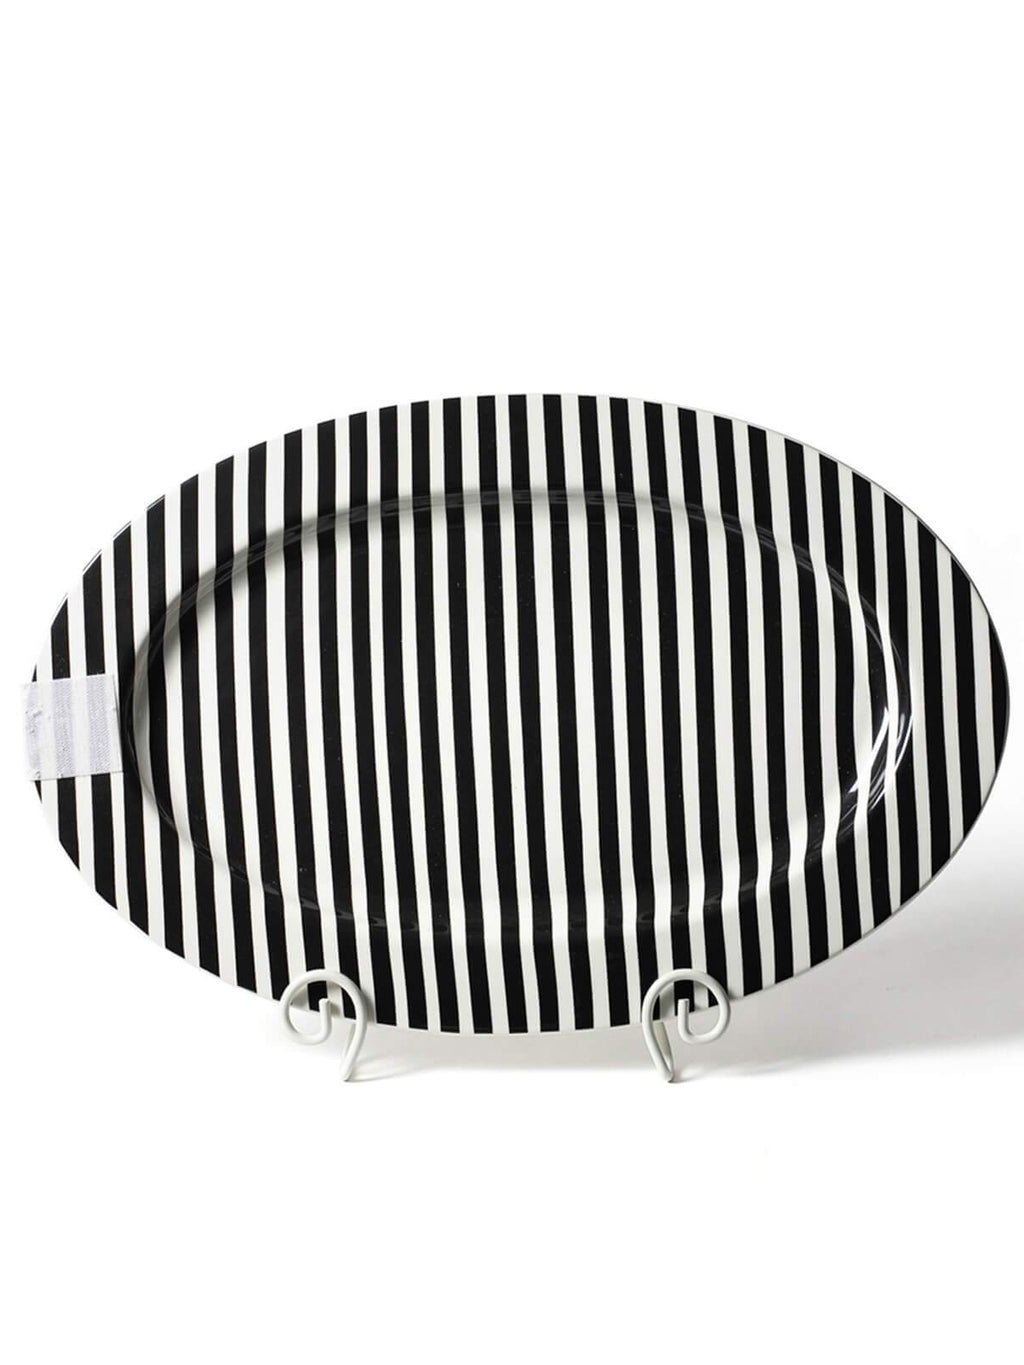 Black Stripe Happy Everything Oval Big Platter